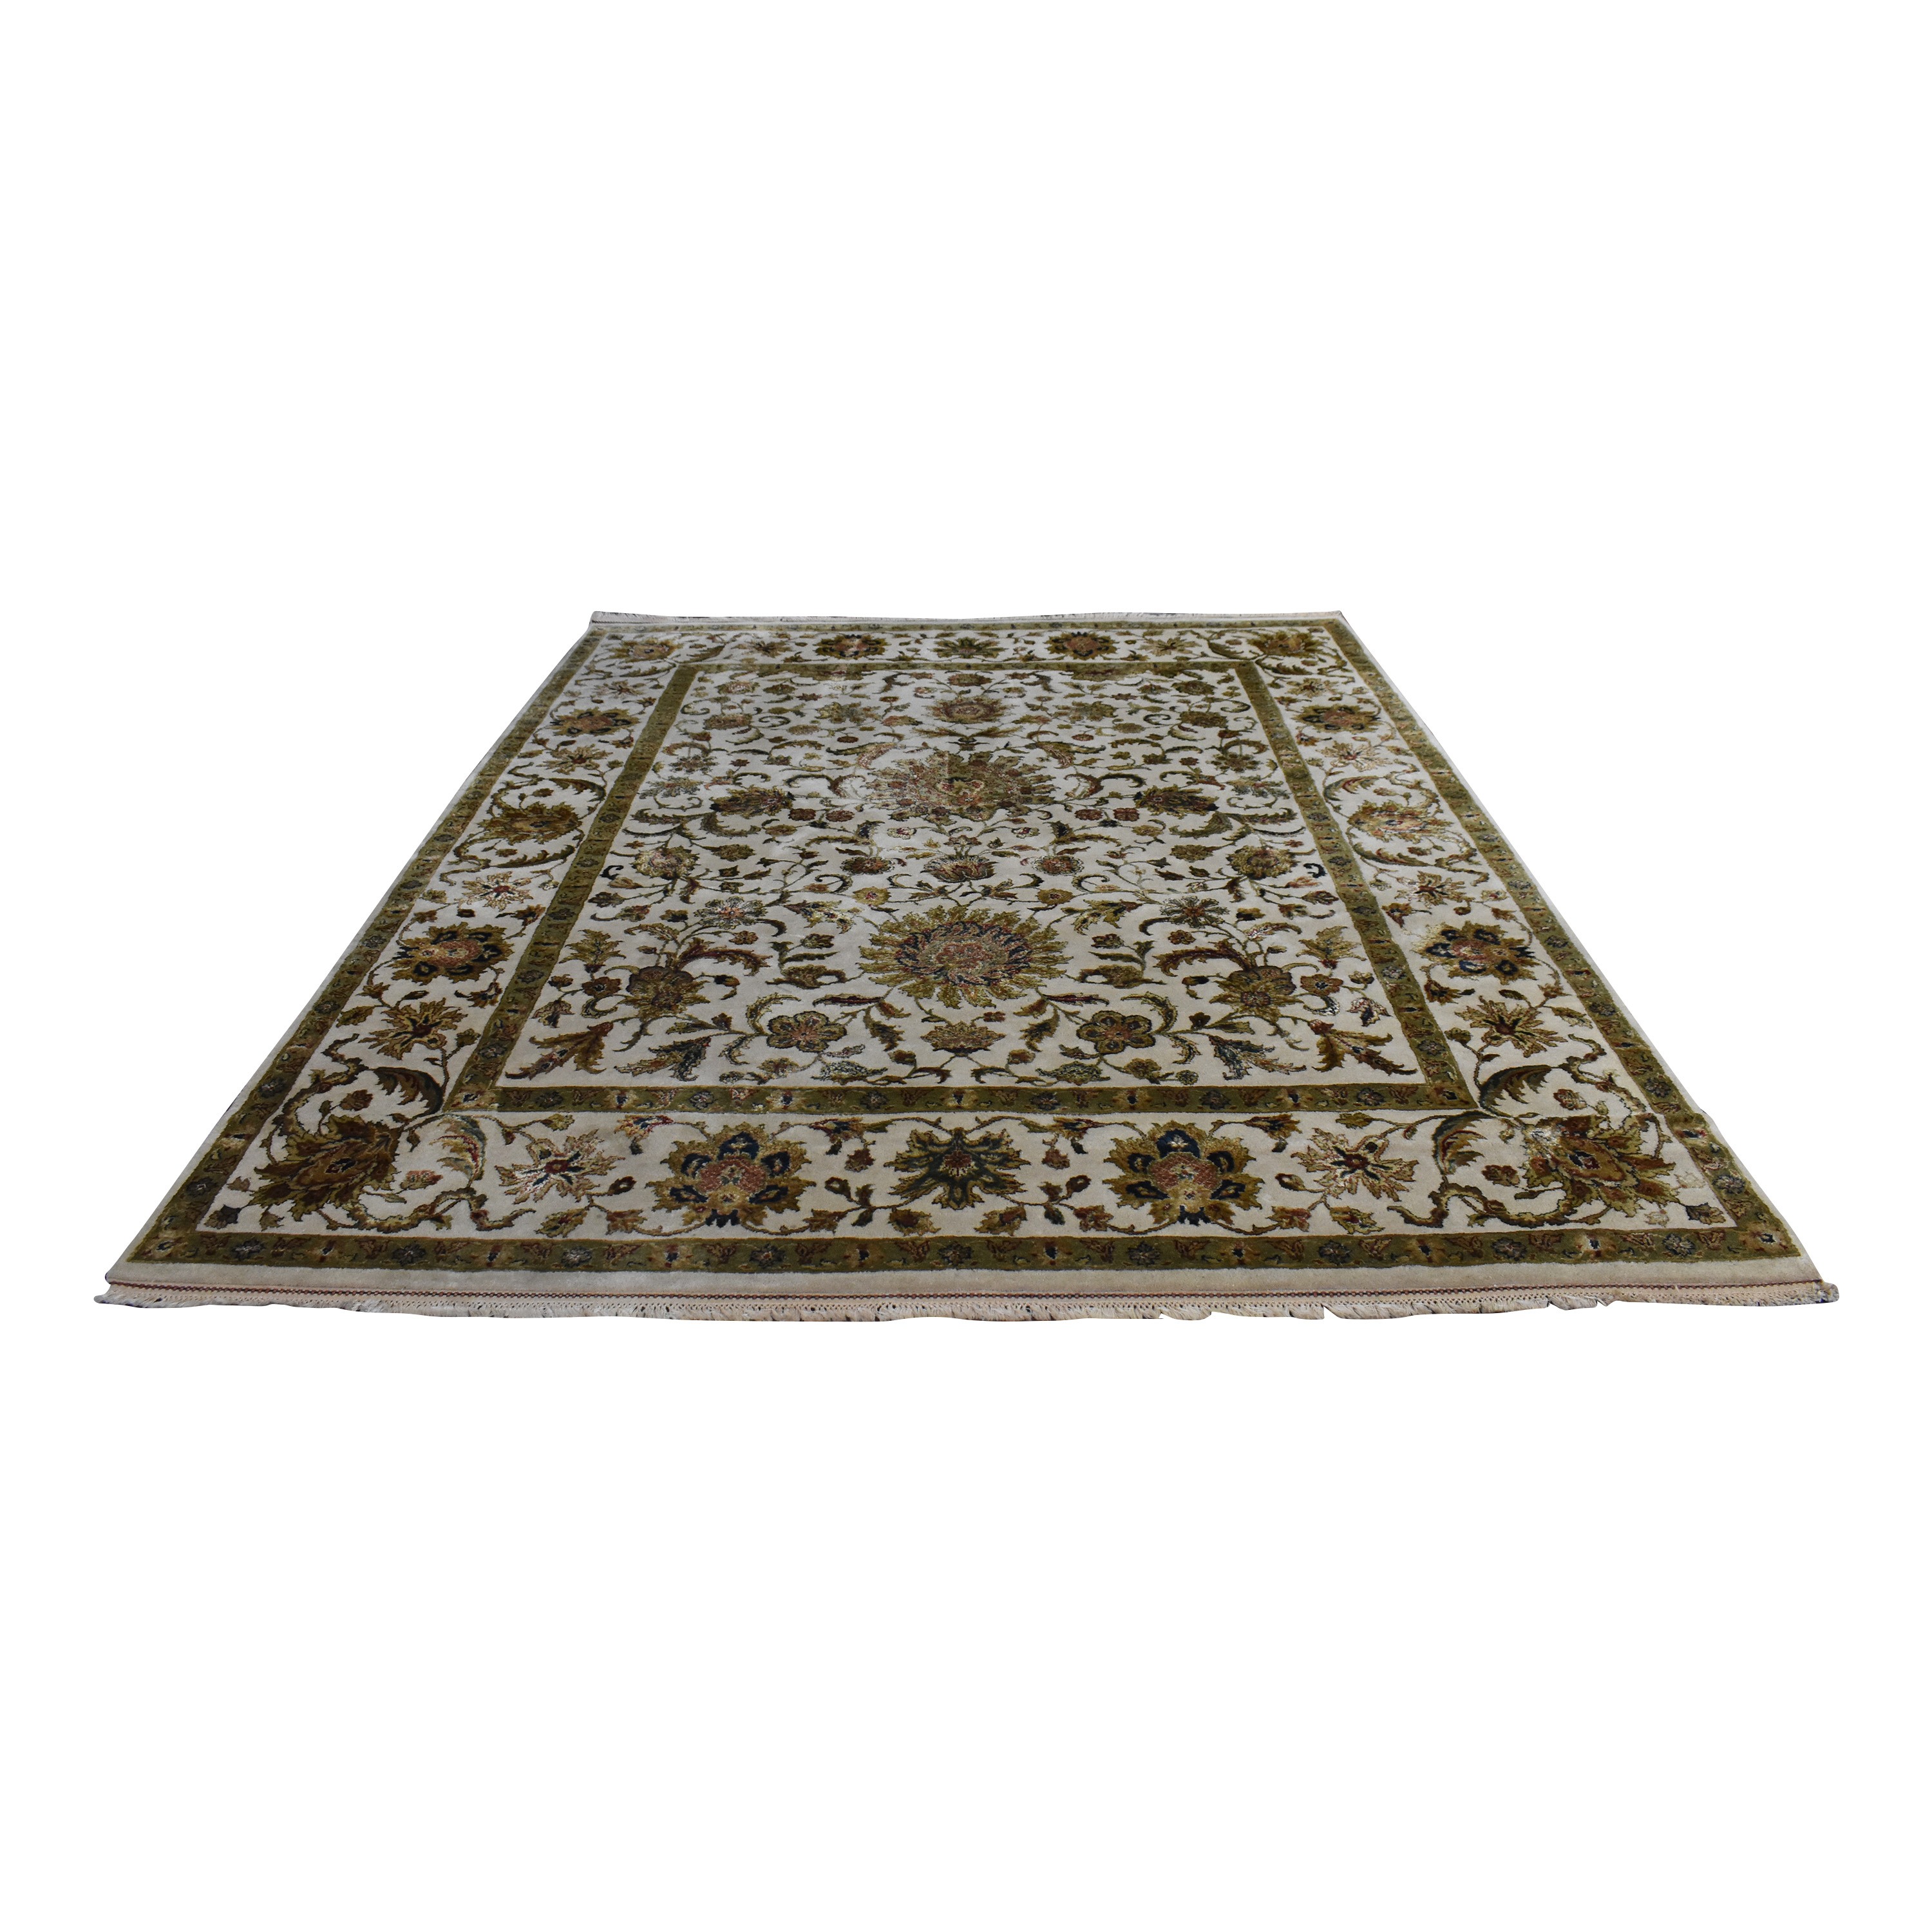 Patterned Border Style Area Rug second hand